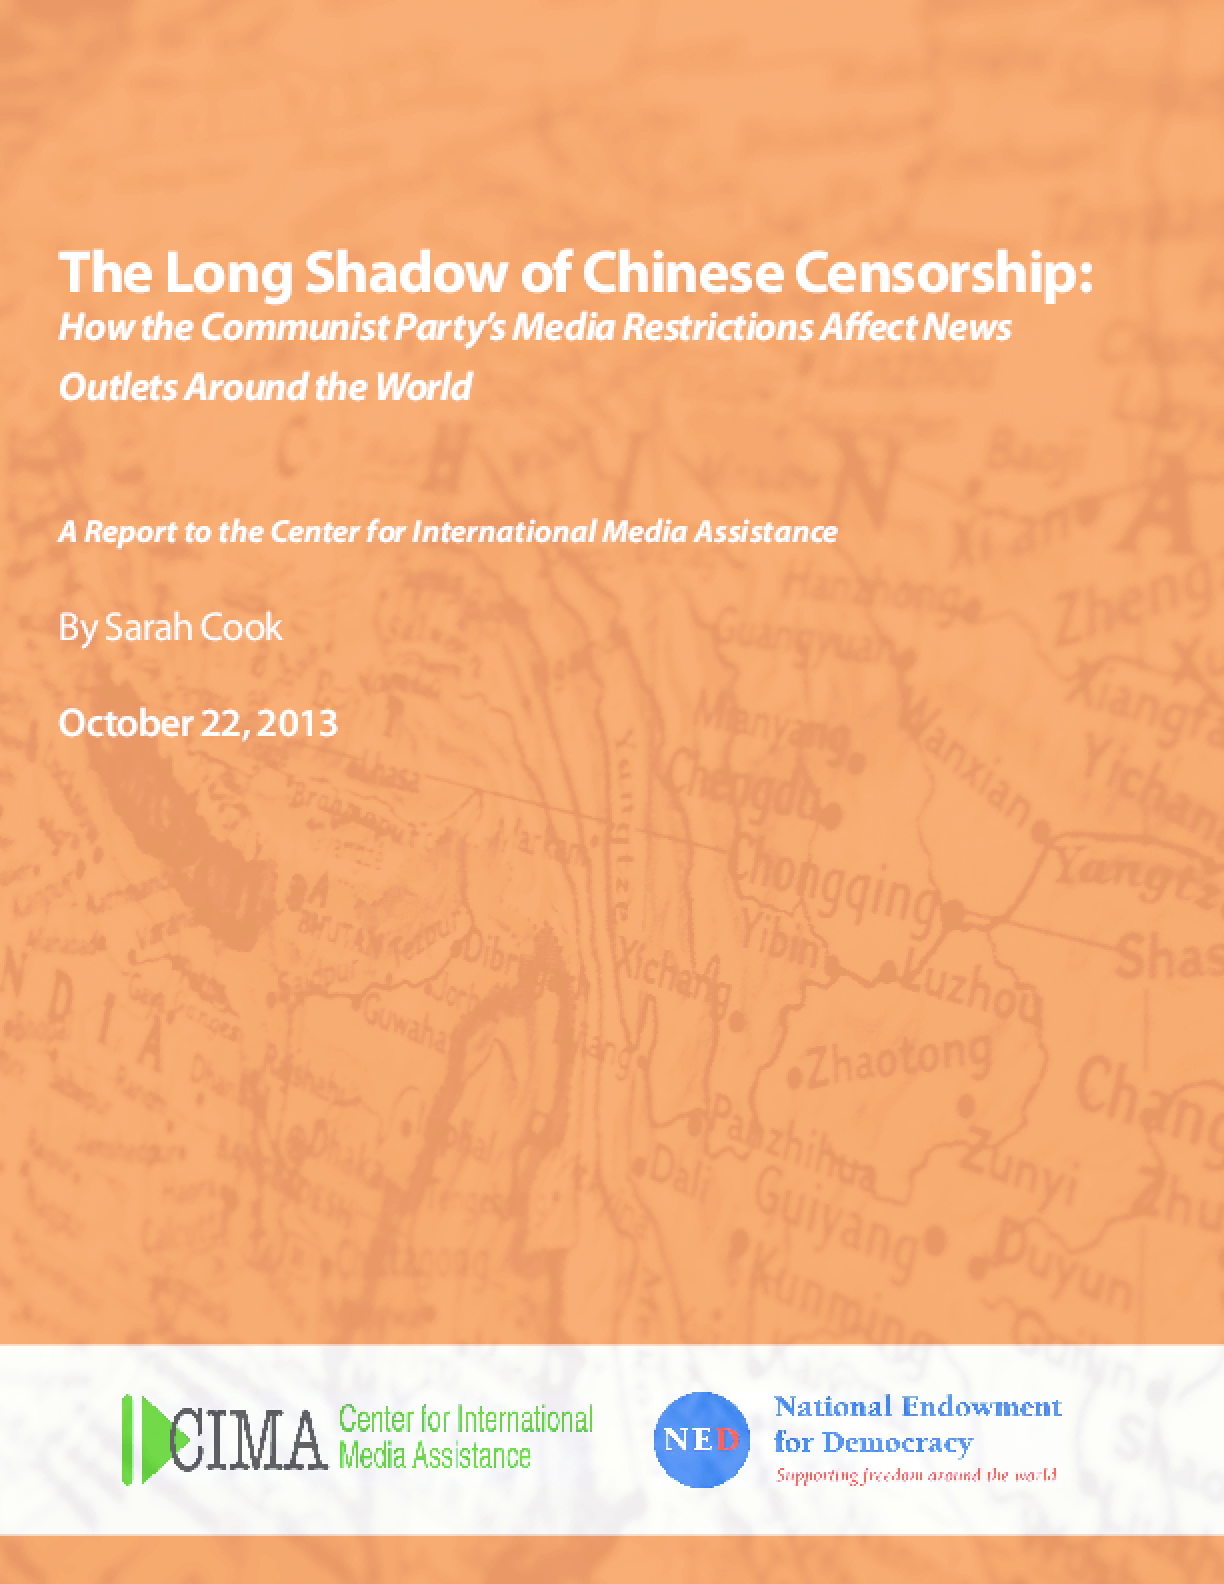 The Long Shadow of Chinese Censorship: How Chinese Media Restrictions Affect News Outlets around the World